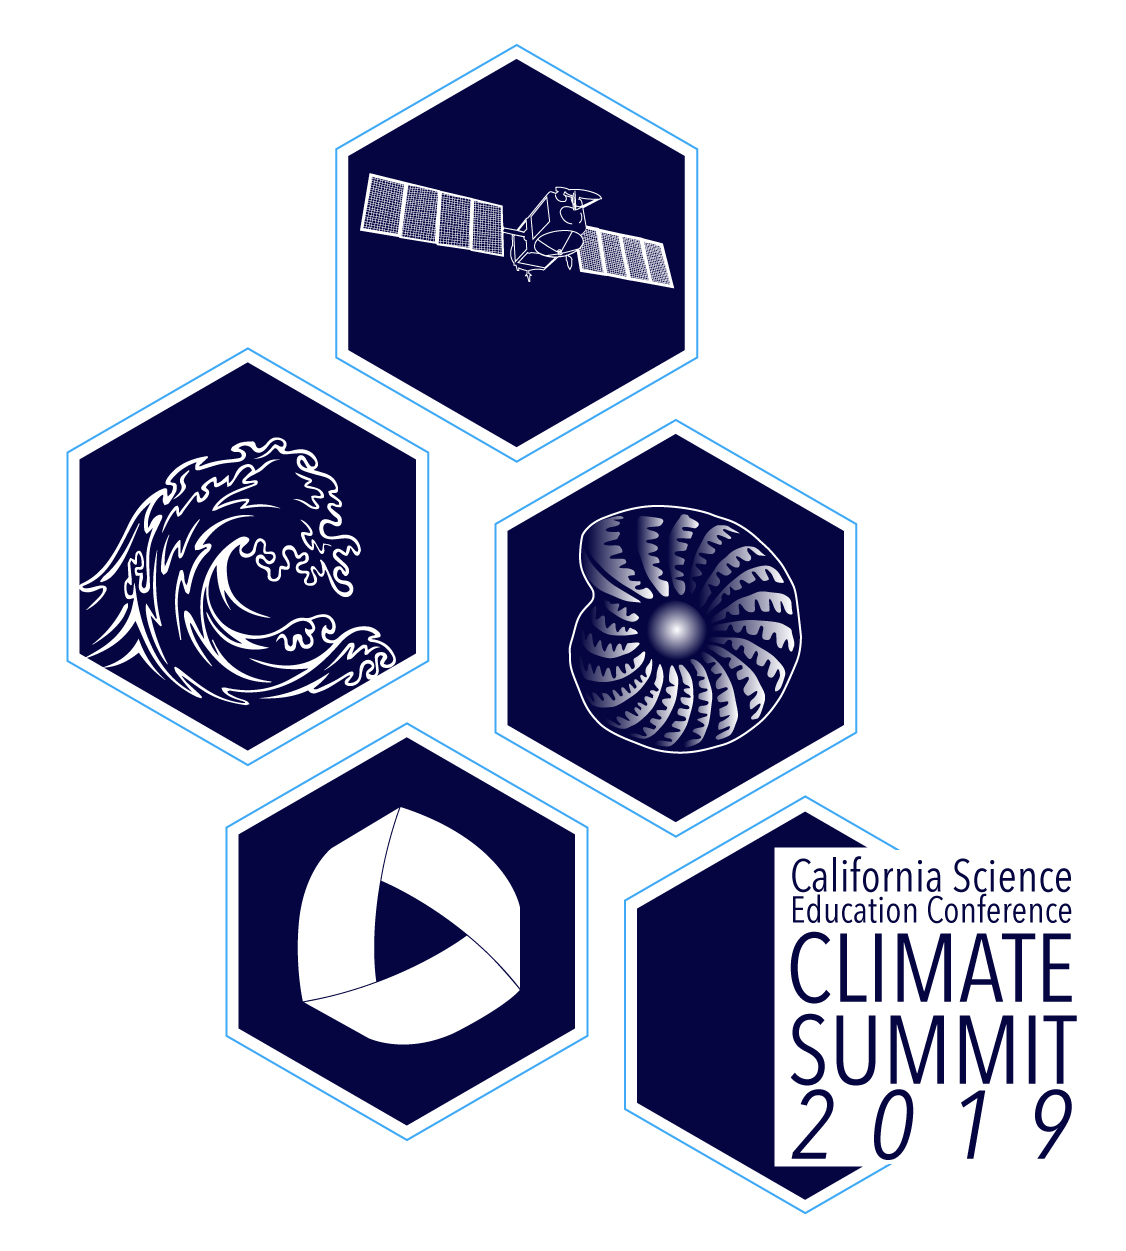 Climate Summit 2019